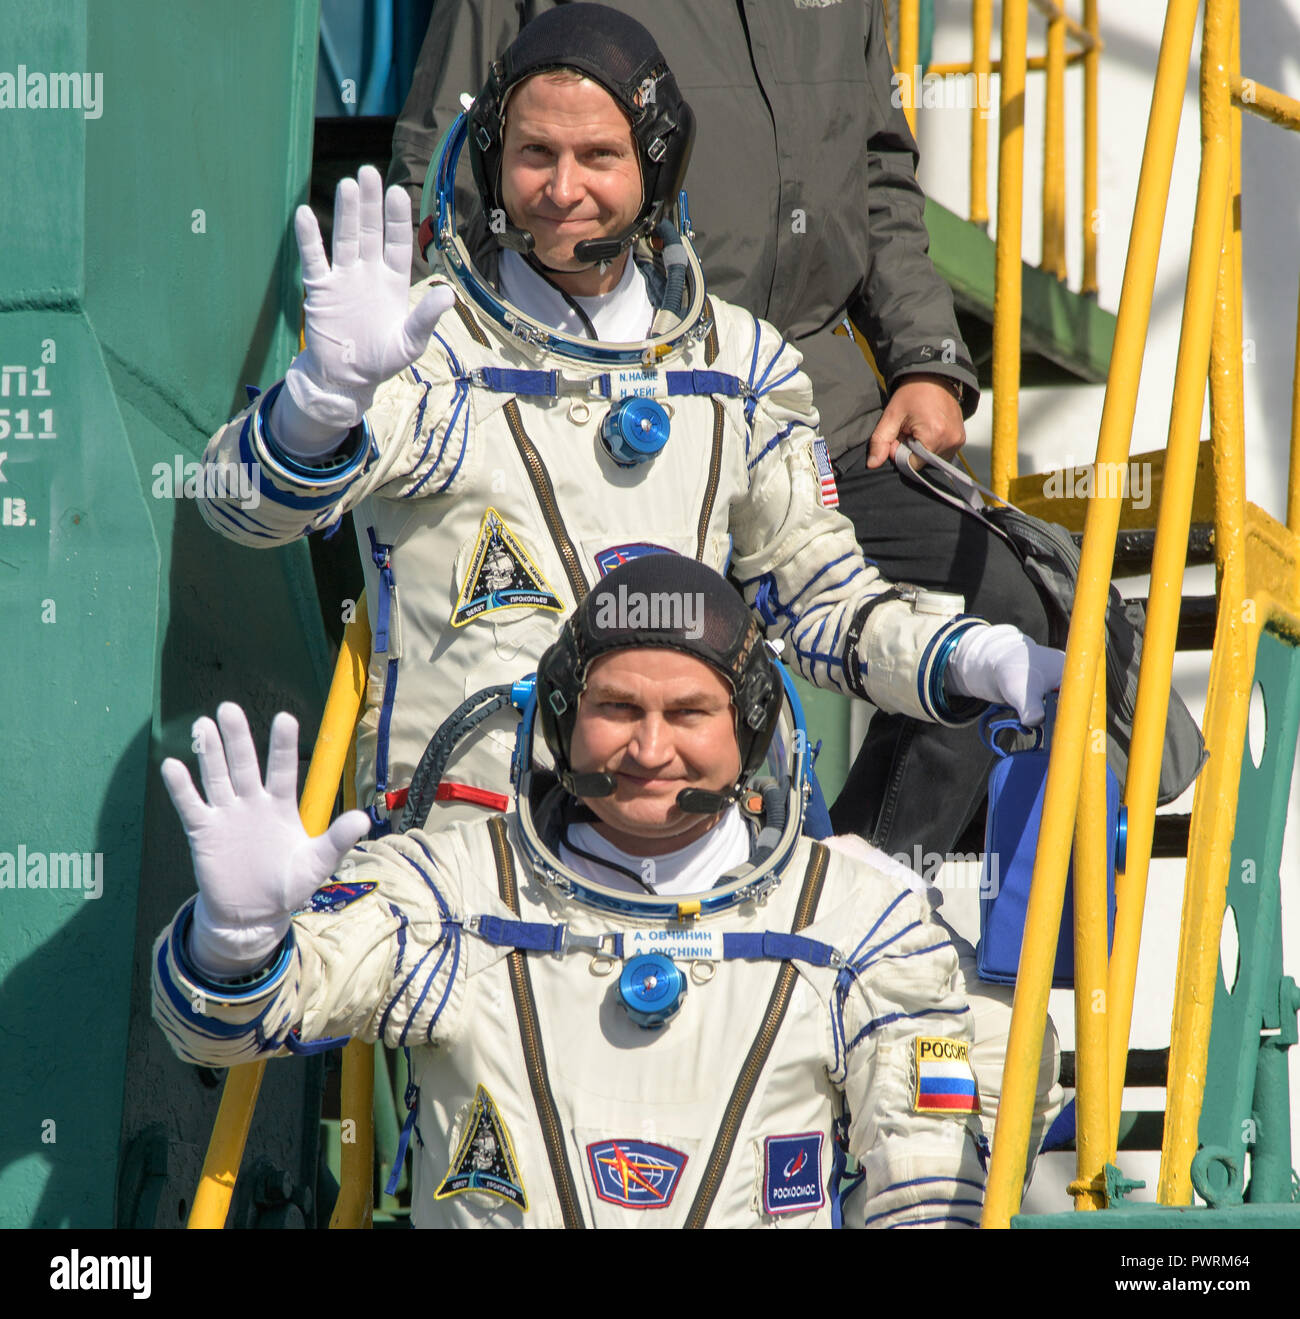 Expedition 57 Flight Engineer Nick Hague of NASA, top, and Flight Engineer Alexey Ovchinin of Roscosmos, wave farewell prior to boarding the Soyuz MS-10 spacecraft for launch, Thursday, Oct. 11, 2018 at the Baikonur Cosmodrome in Kazakhstan. Hague and Ovchinin will spend the next six months living and working aboard the International Space Station. Photo Credit: (NASA/Bill Ingalls) - Stock Image